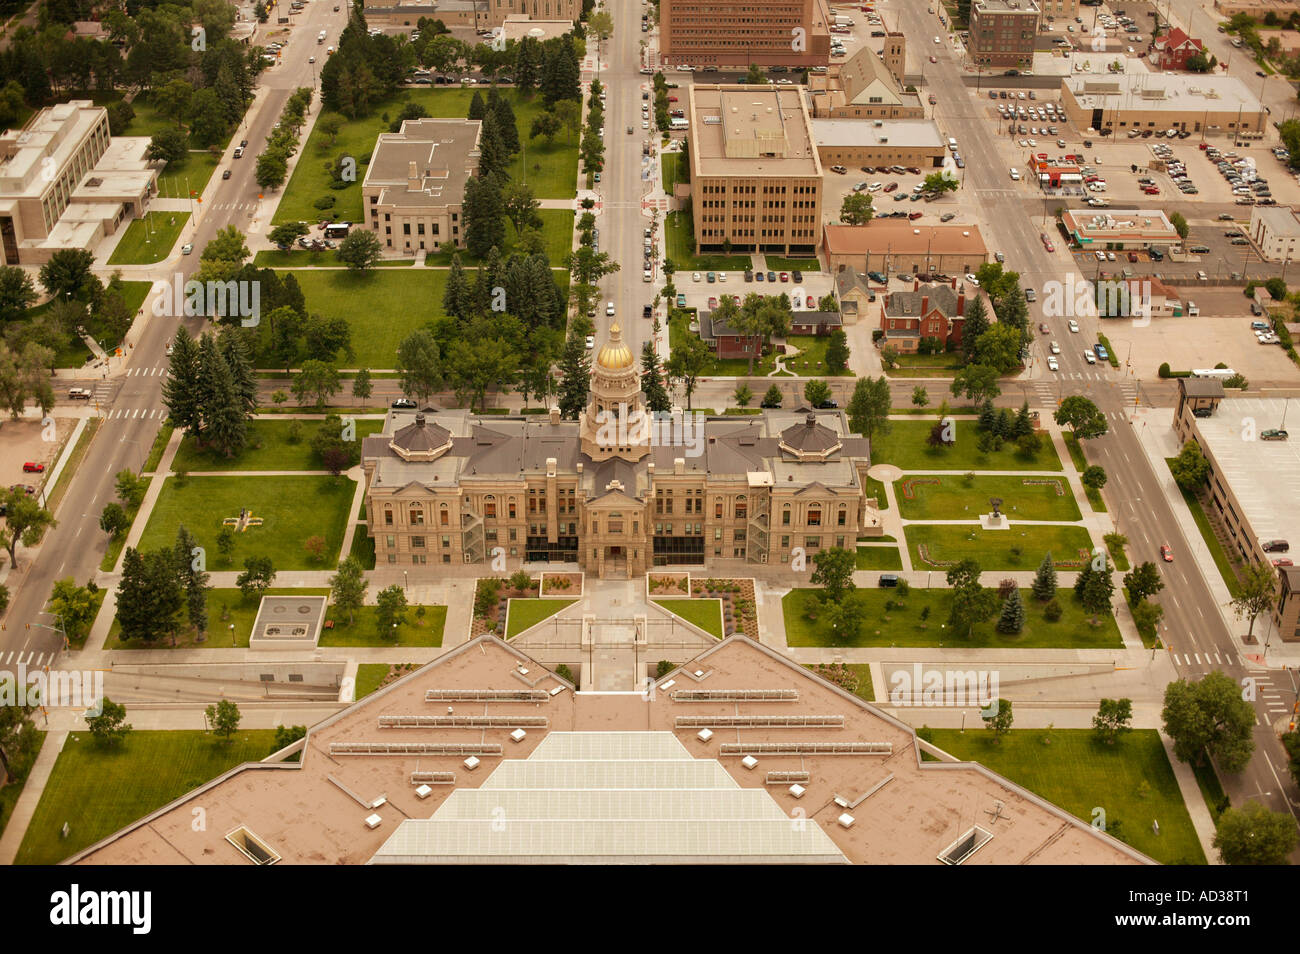 Aerial of state capitol building in Cheyenne, Wyoming, USA